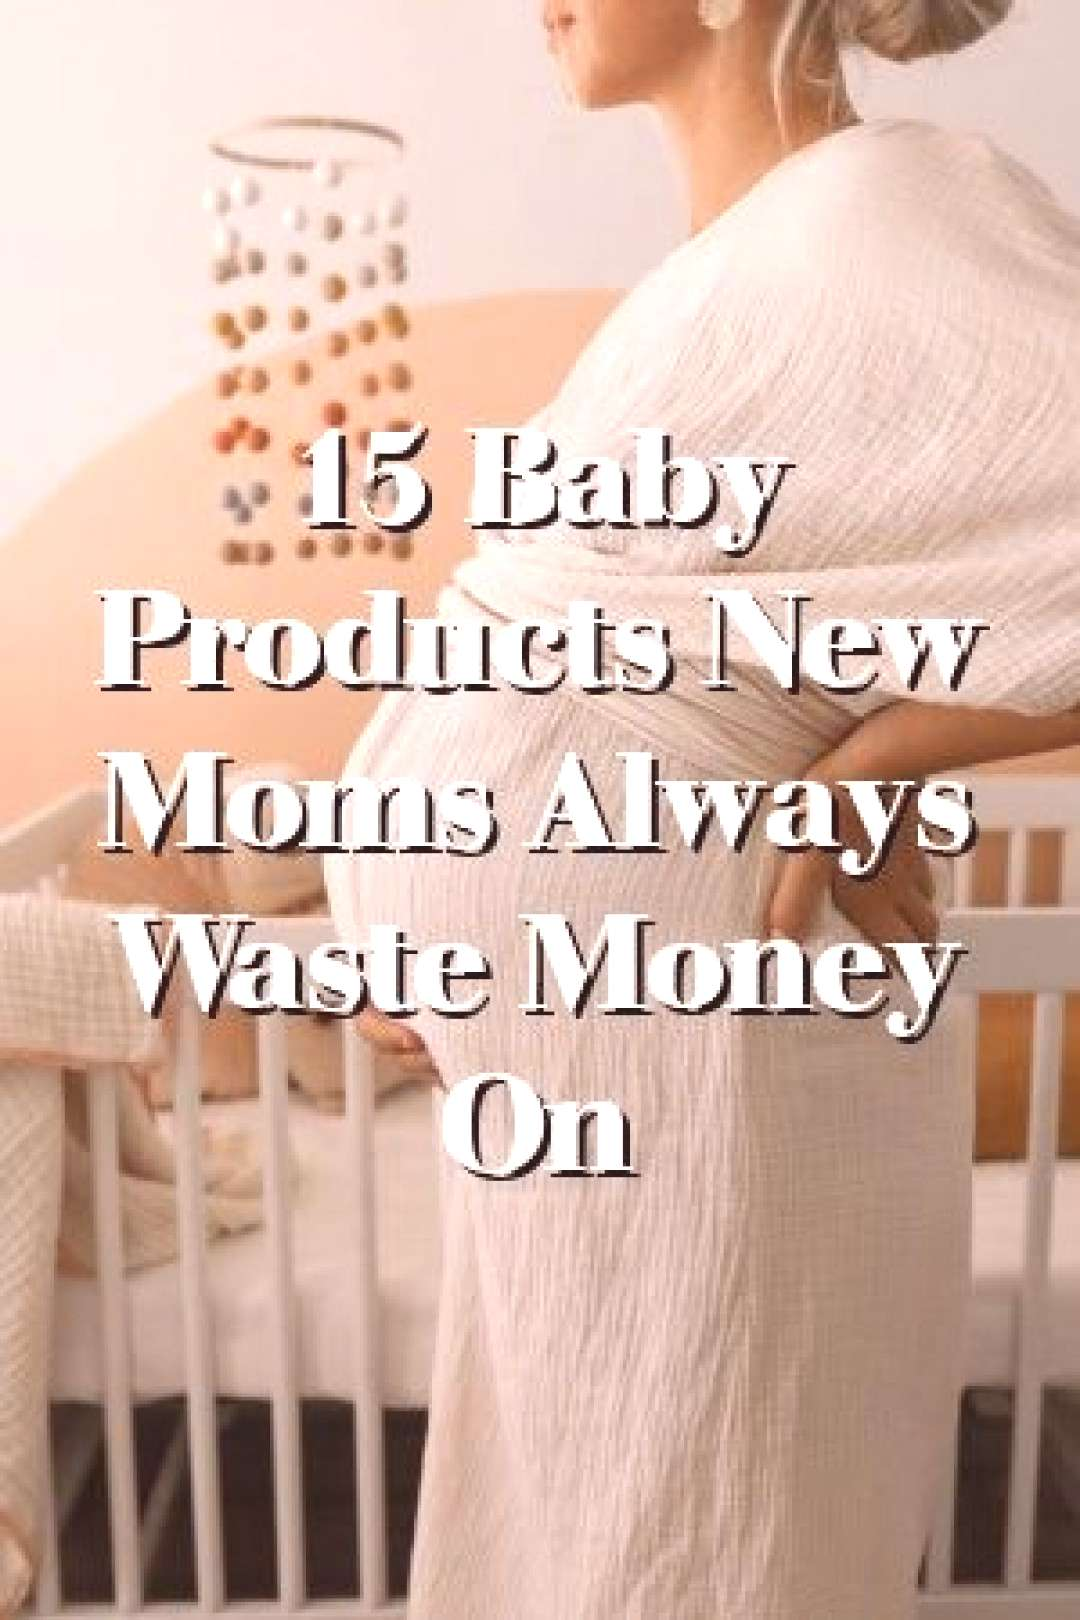 Tracey Paige 15 Baby Products New Moms Always Waste Money On Tracey Paige Tells About 15 Baby Produ